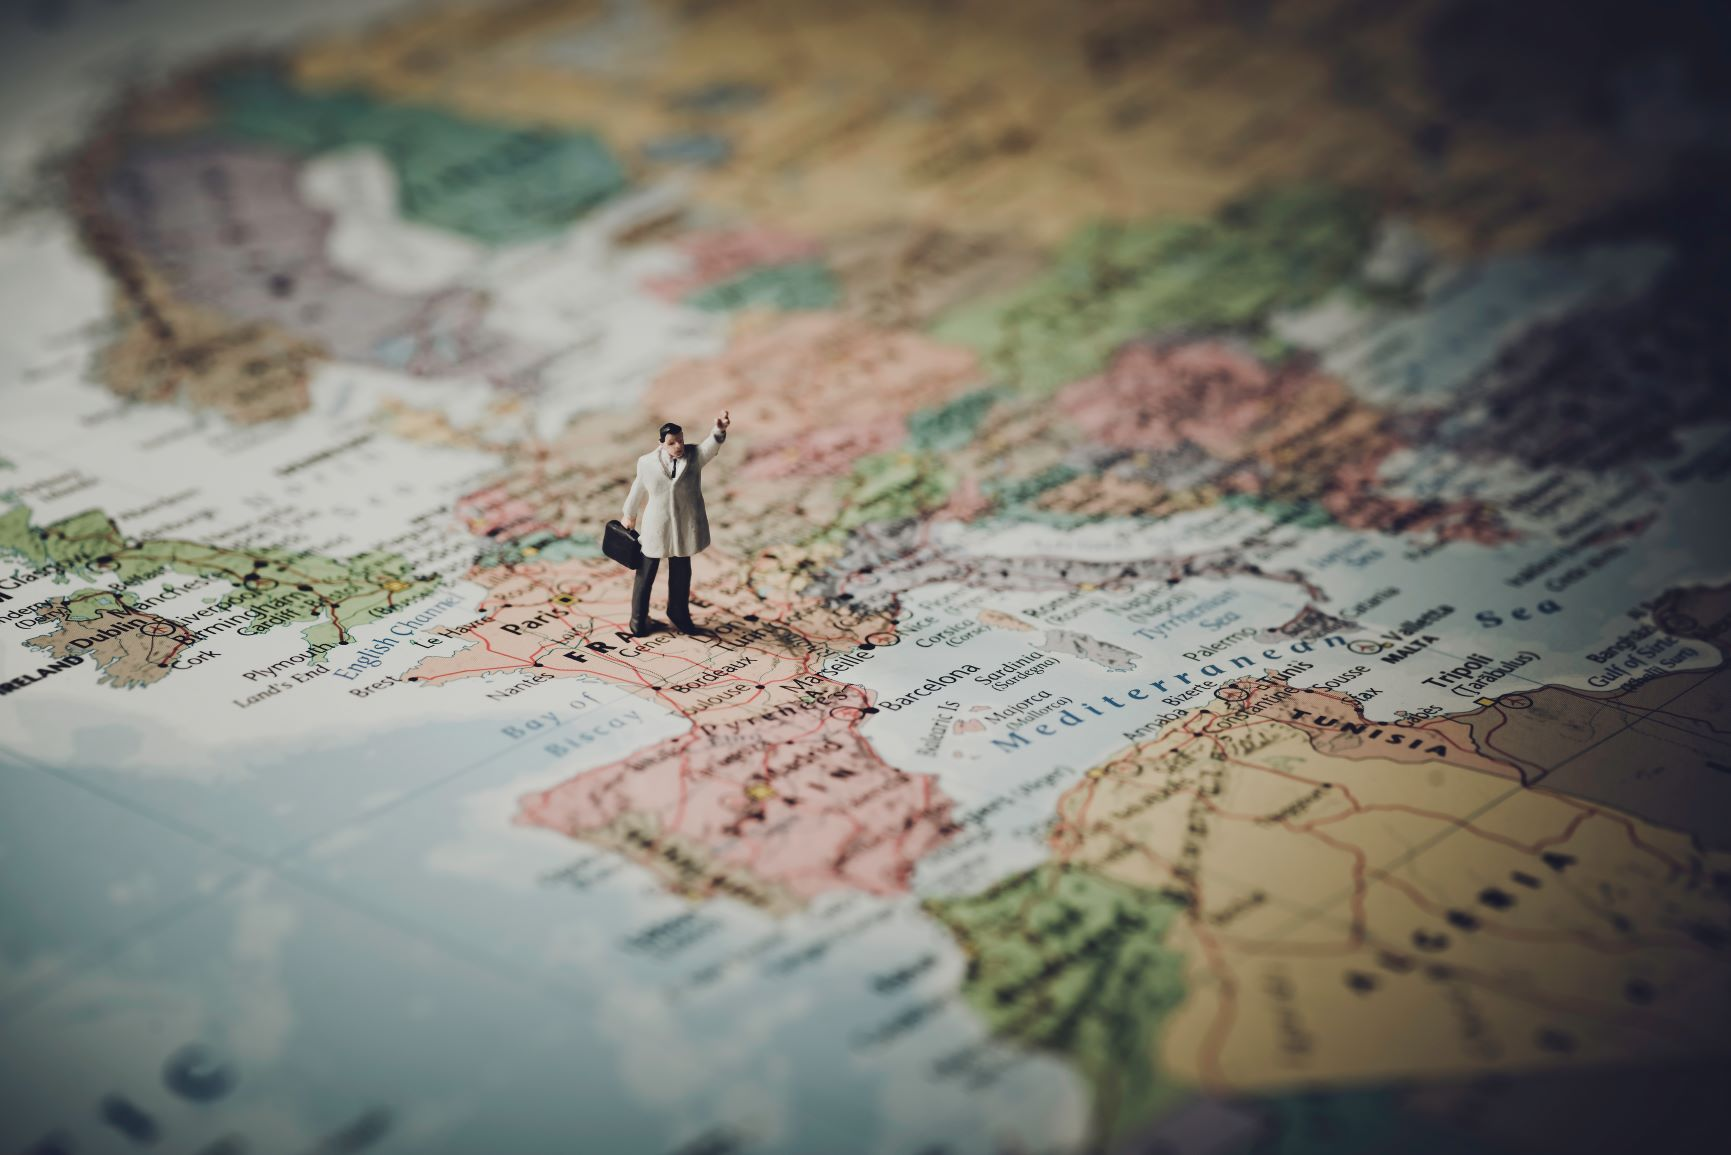 5 common misunderstandings about hiring tech talent from abroad